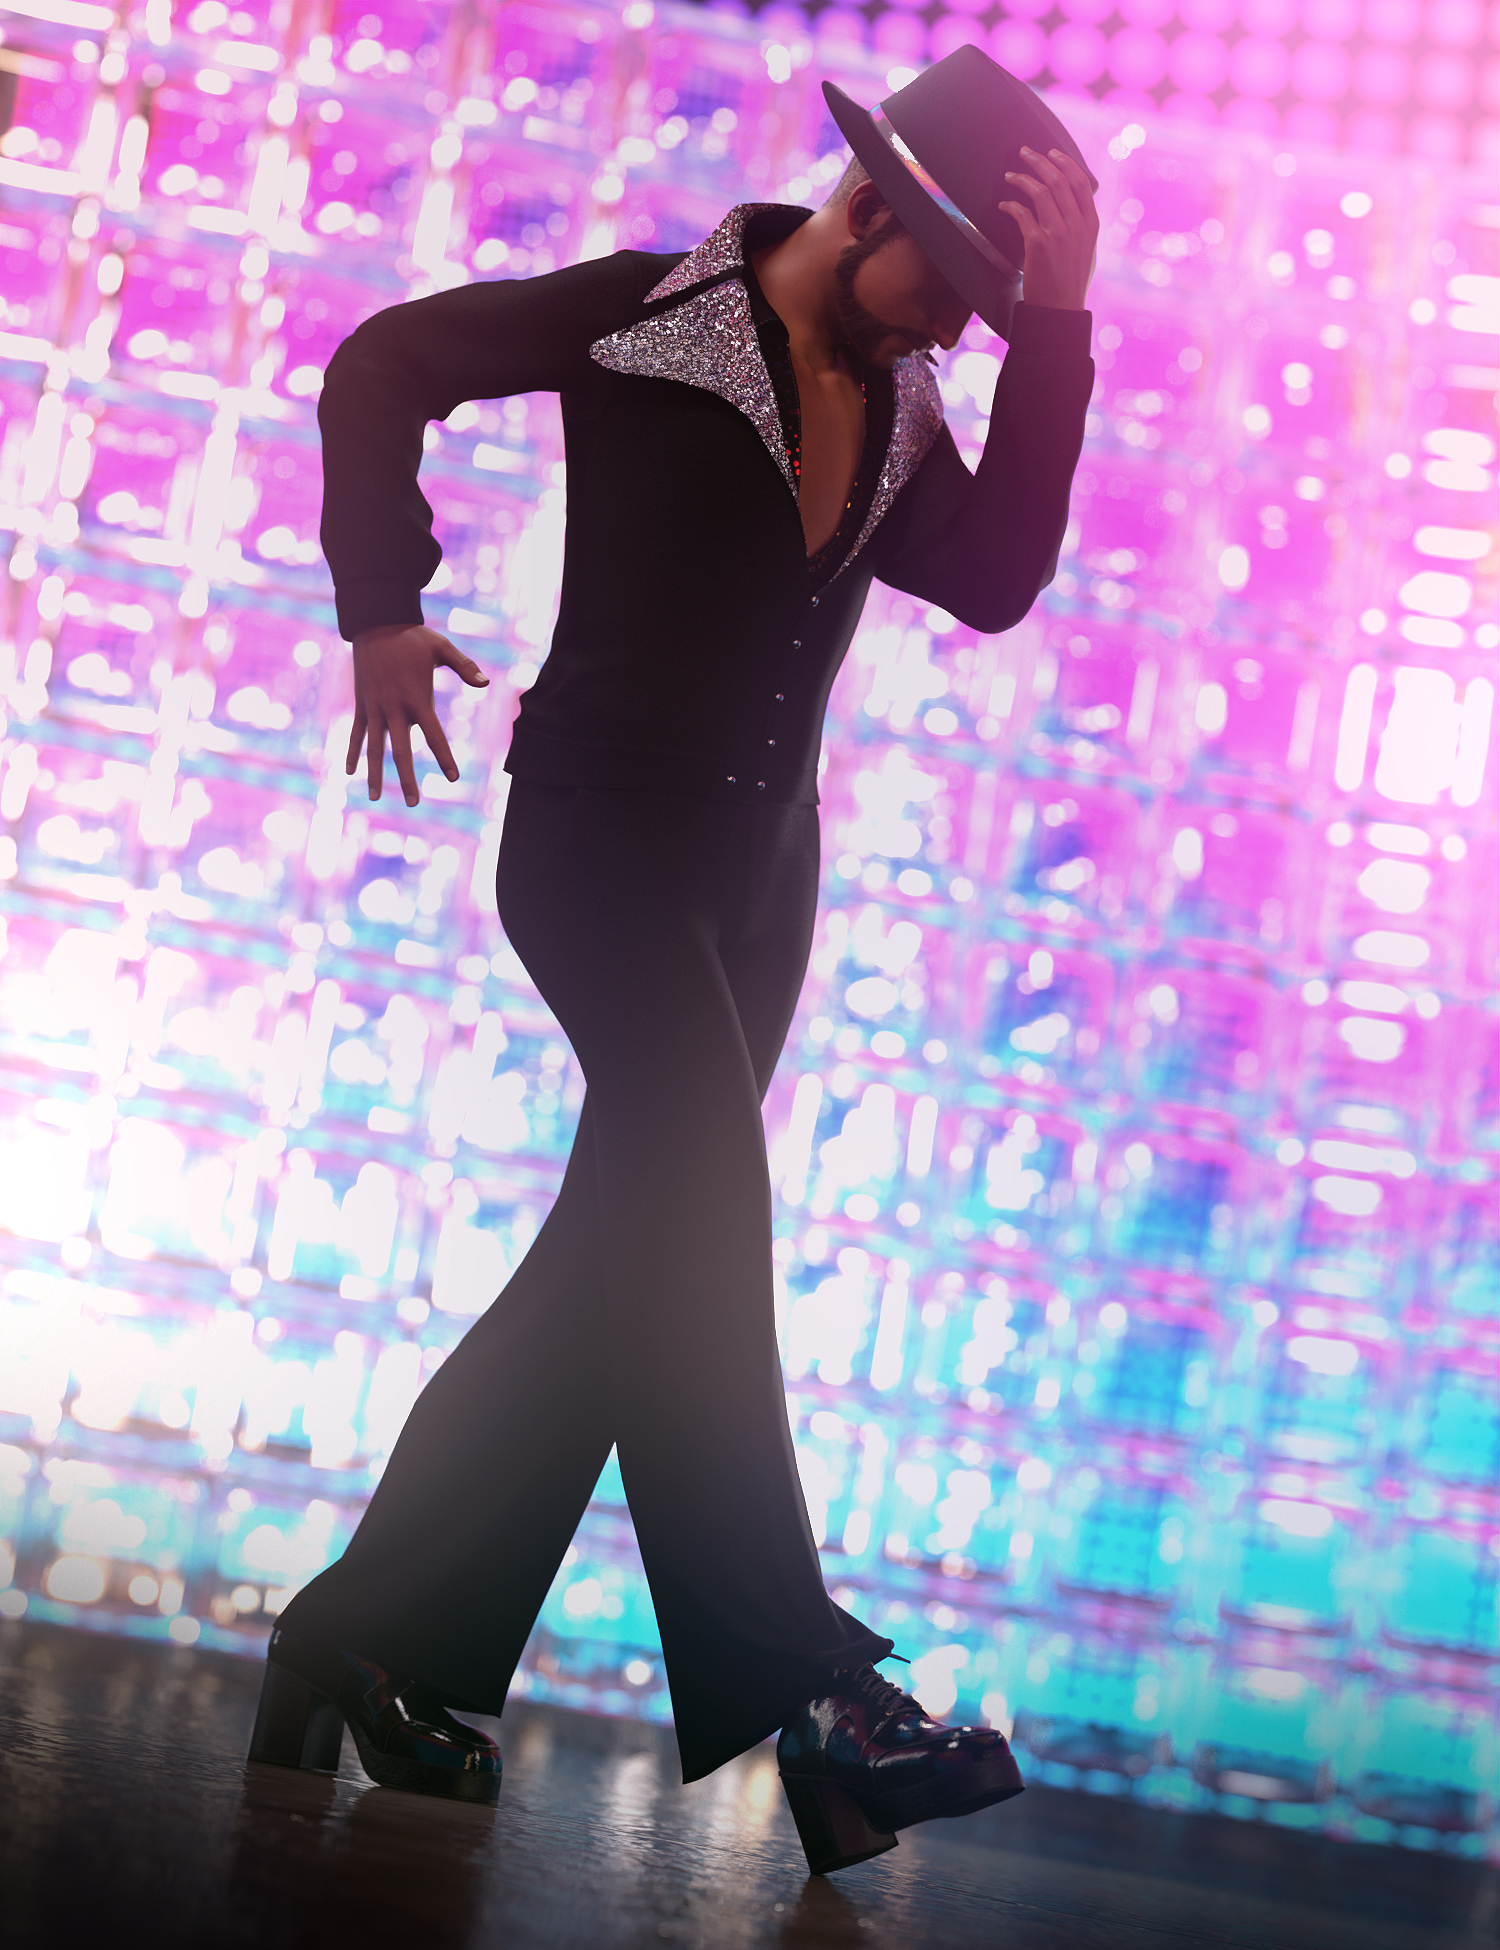 dForce Disco Boogie Outfit for Genesis 8 Males by: Barbara Brundon3D-GHDesignSade, 3D Models by Daz 3D